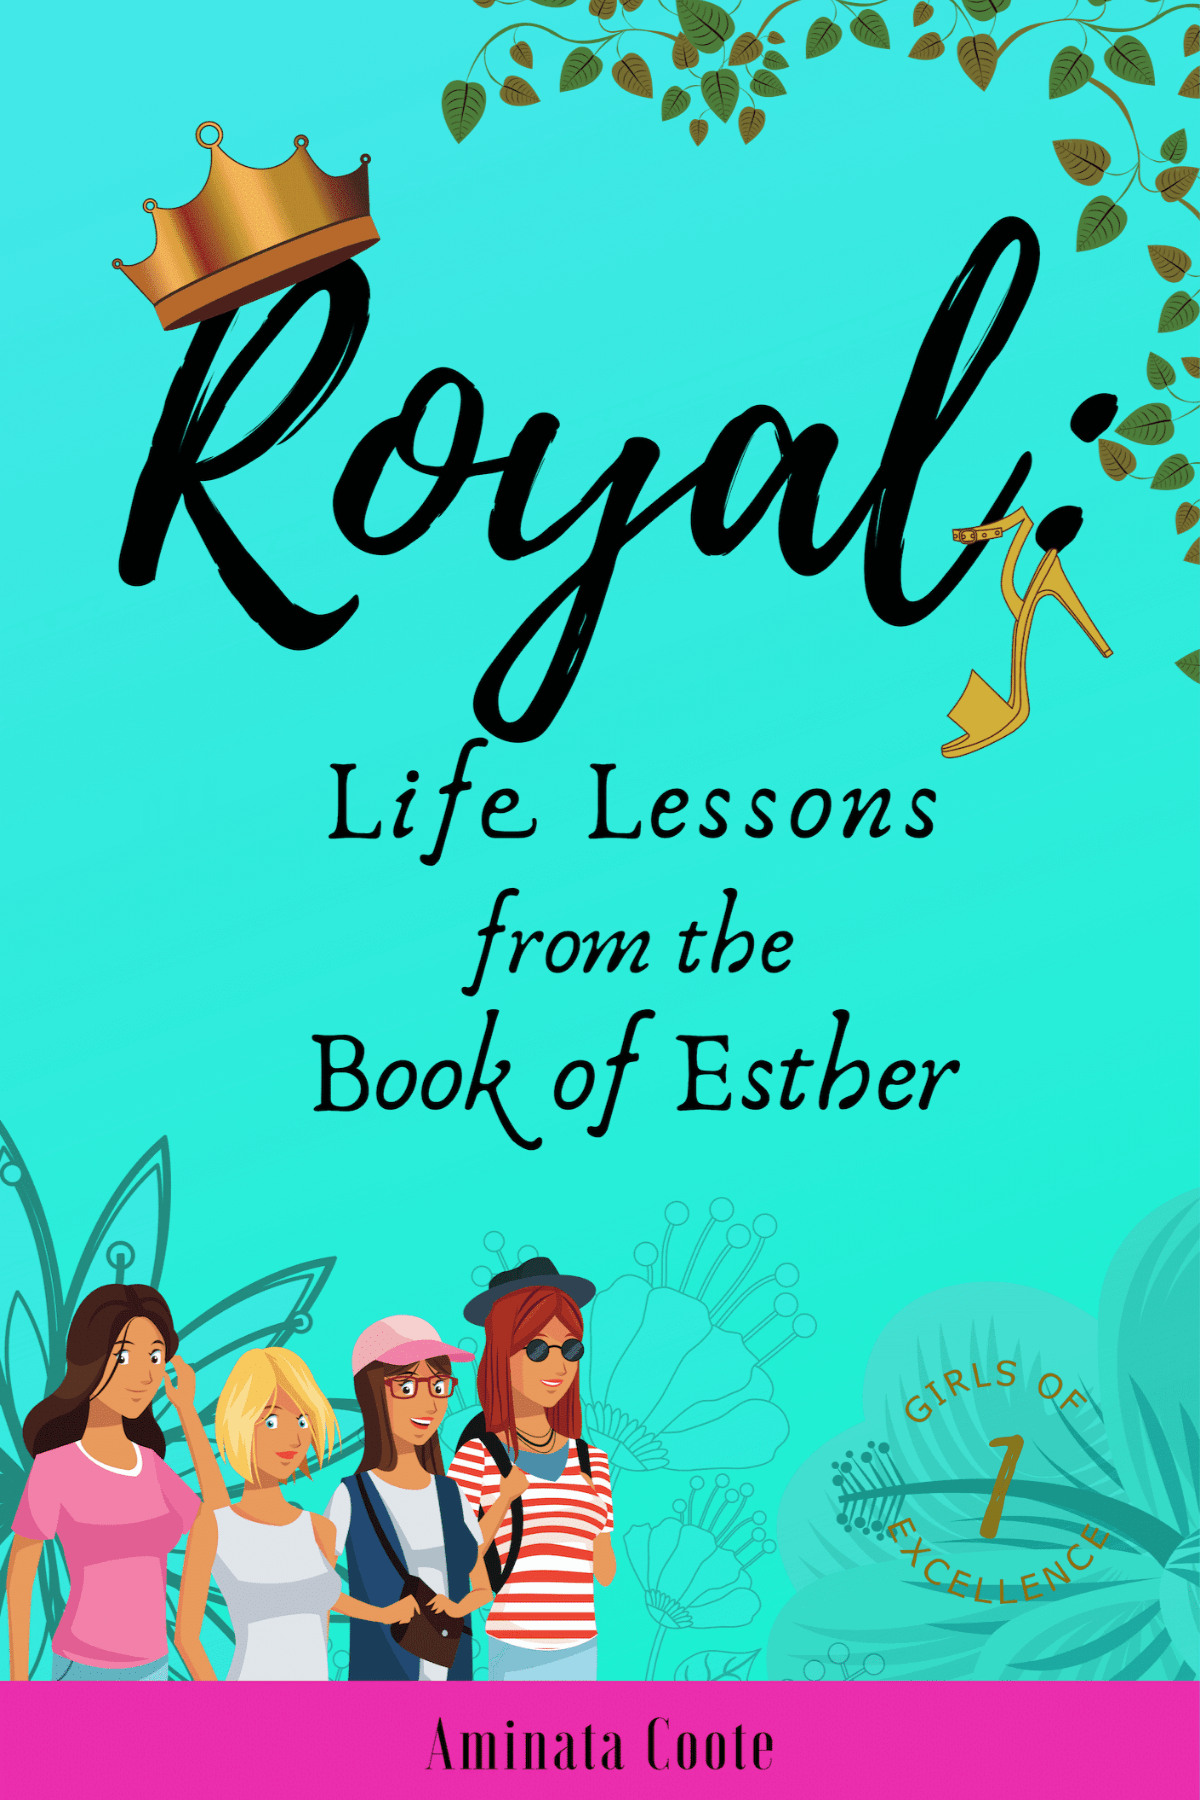 moral lessons from the book of esther